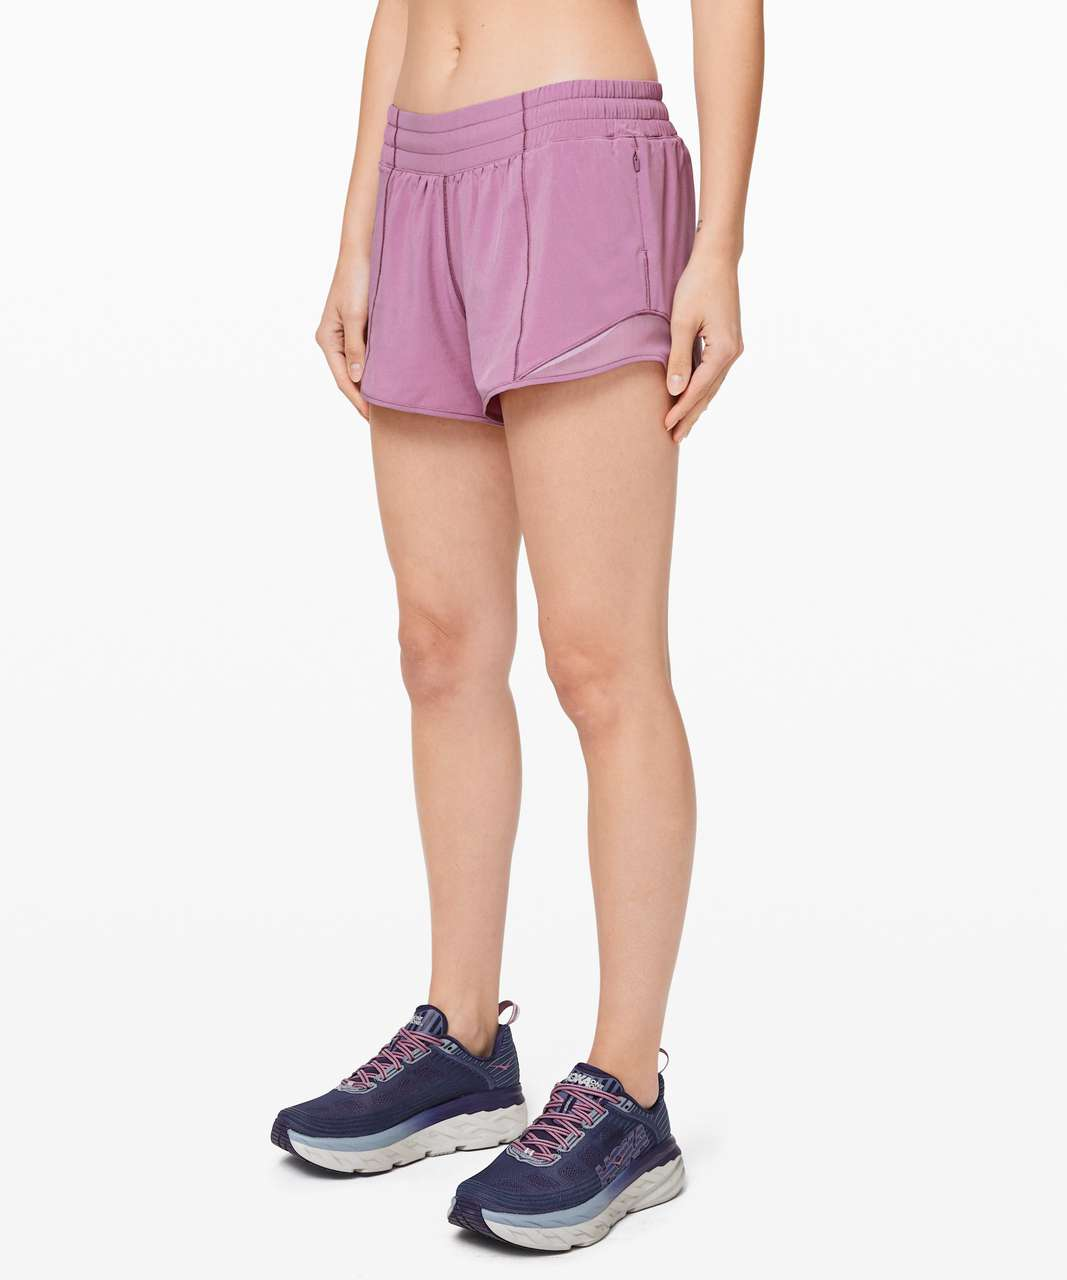 "Lululemon Hotty Hot Short II *Long 4"" - Jubilee"